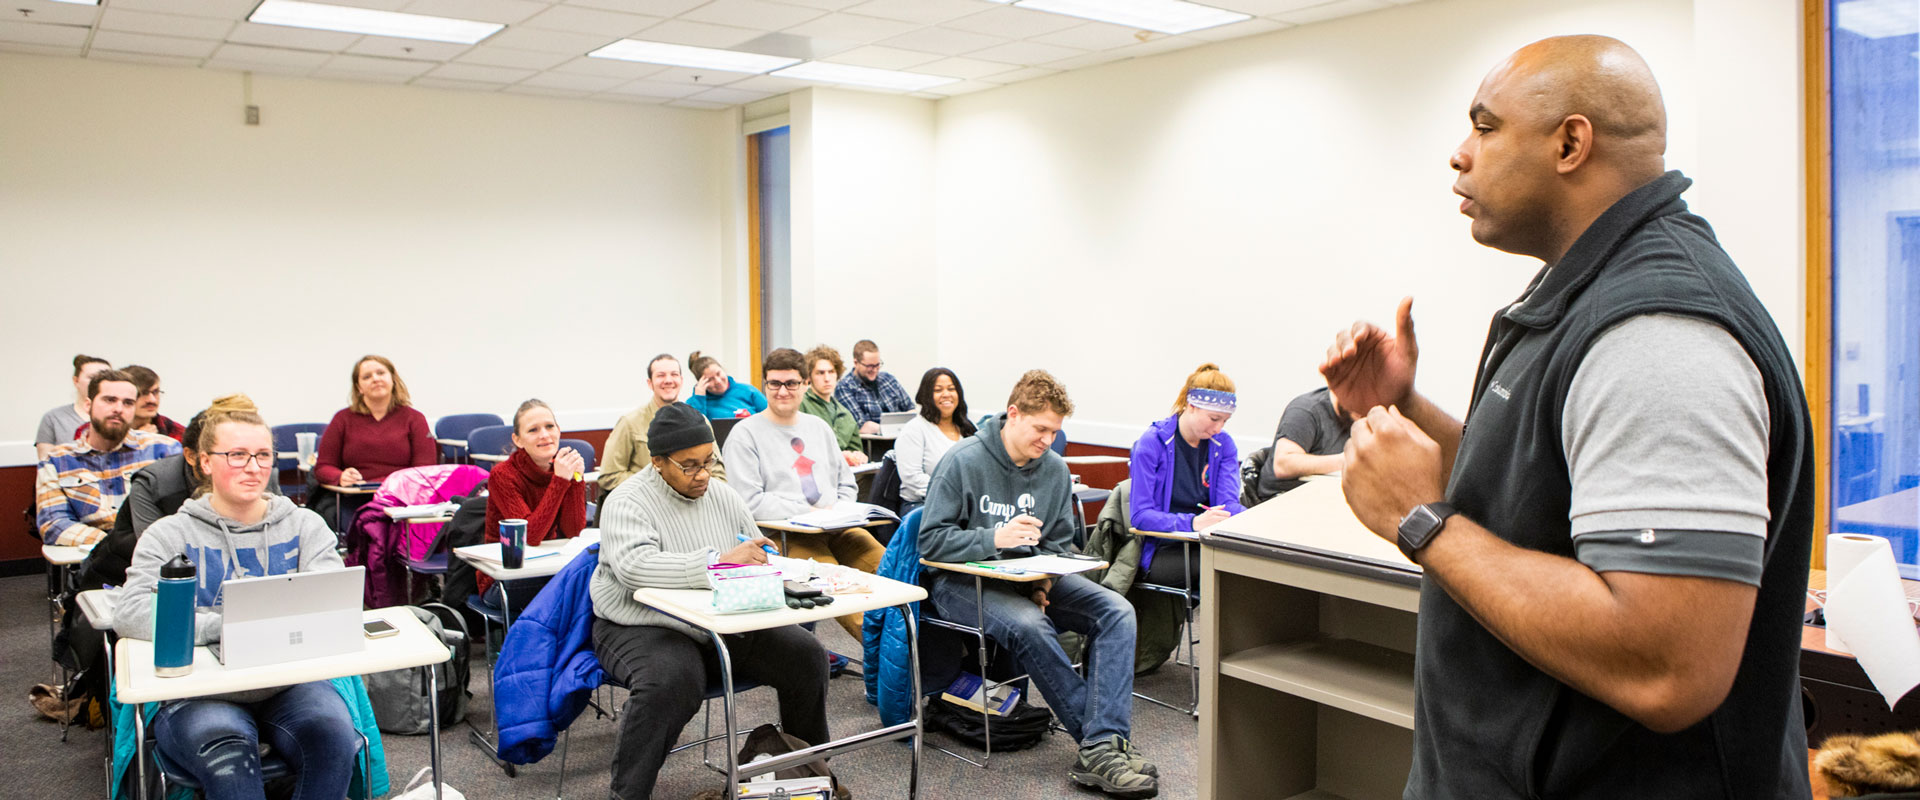 A faculty member lecturing a classroom full of students